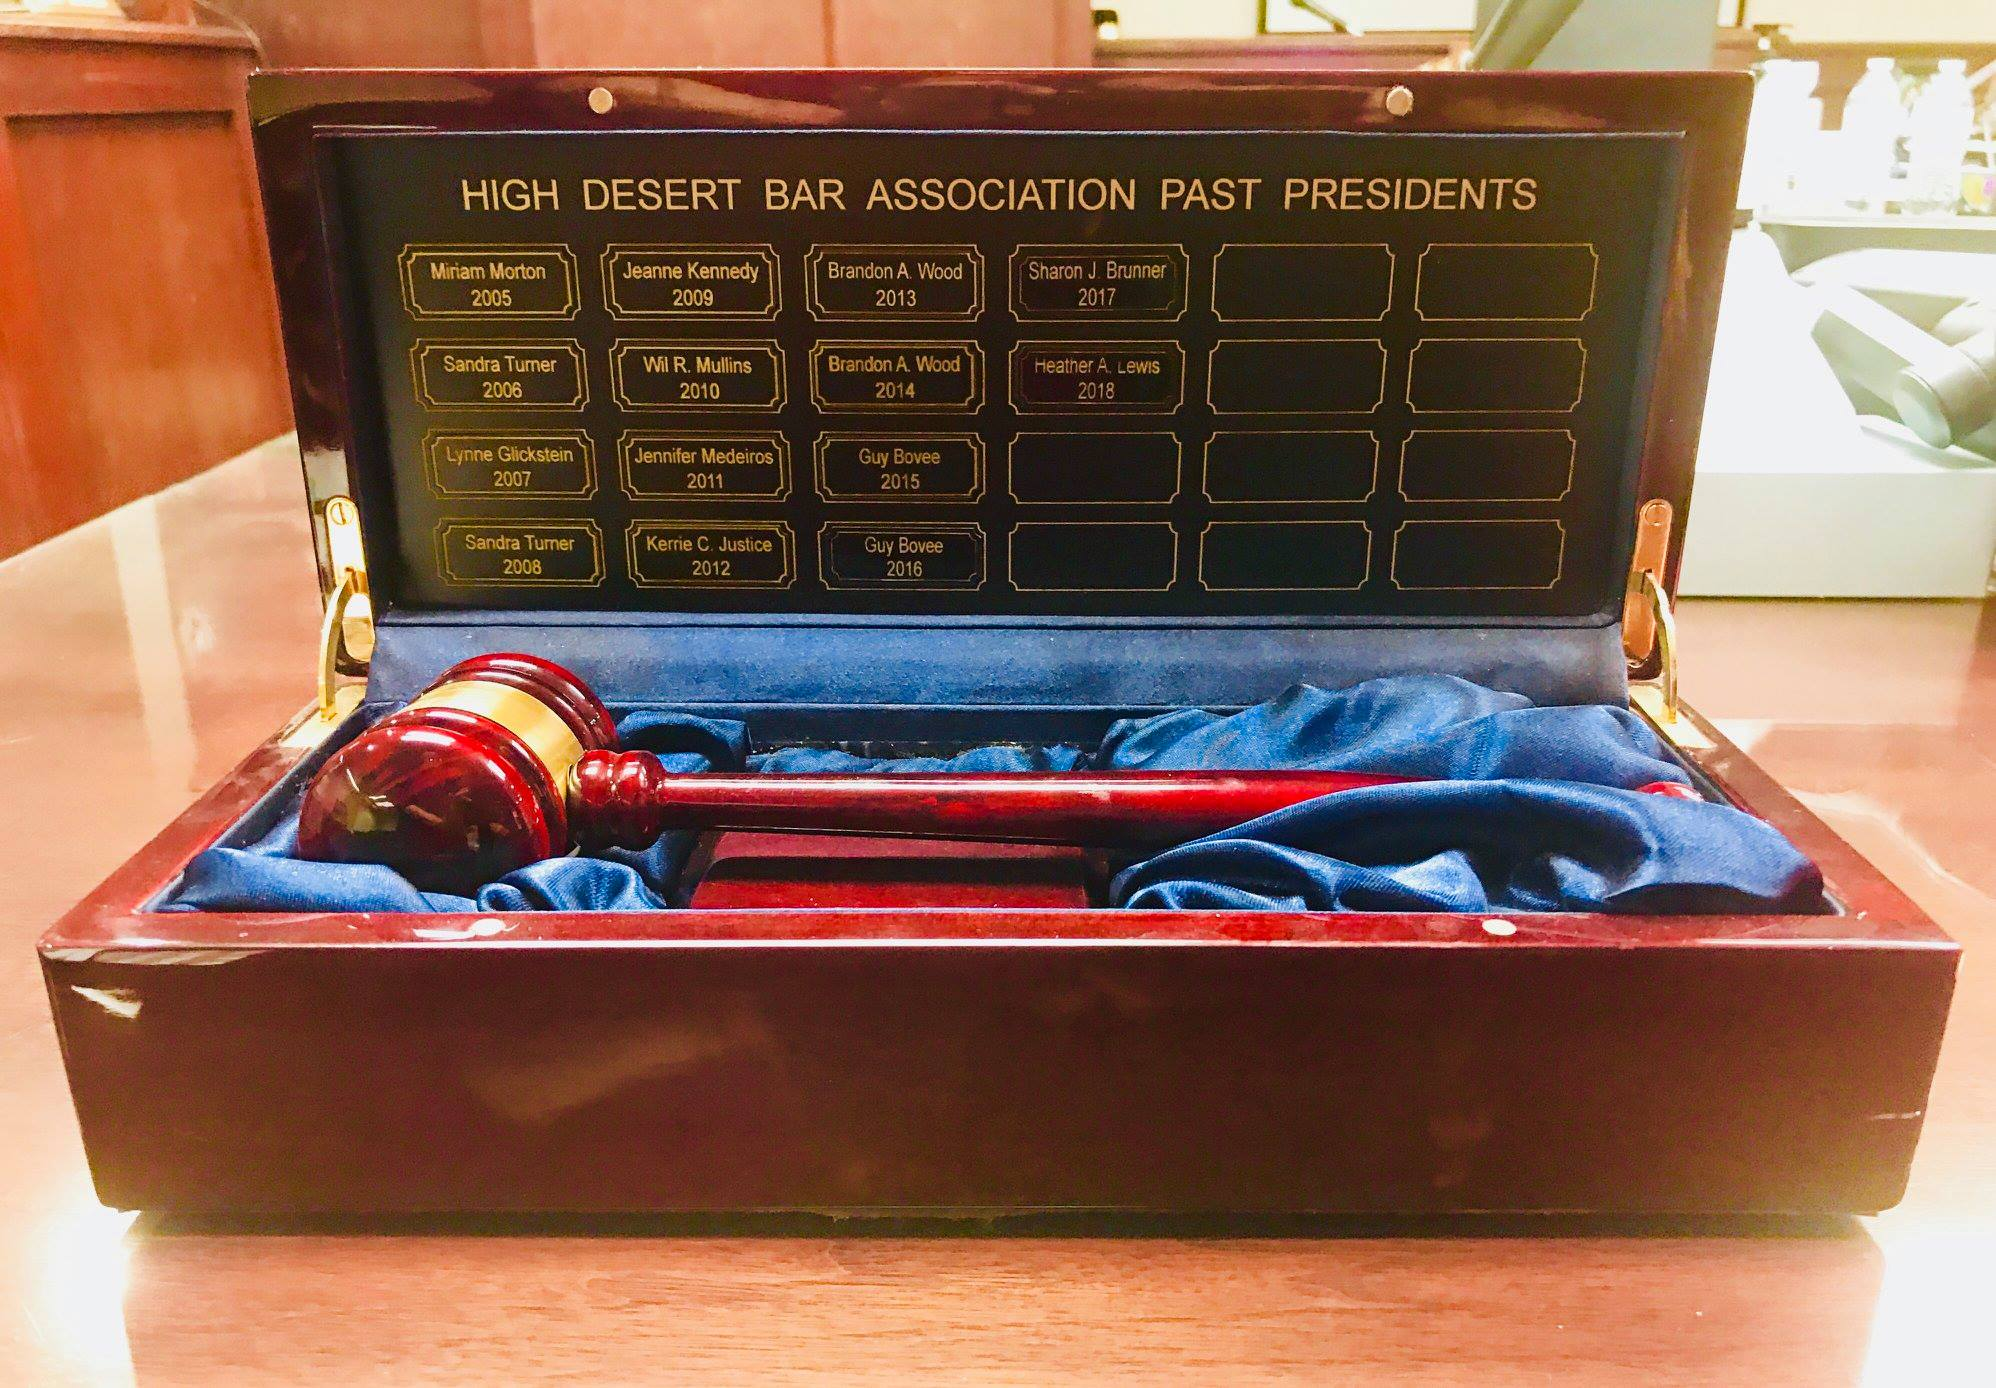 - HDBA President's Gavel recognizing the Bar Associations past and current Presidents.